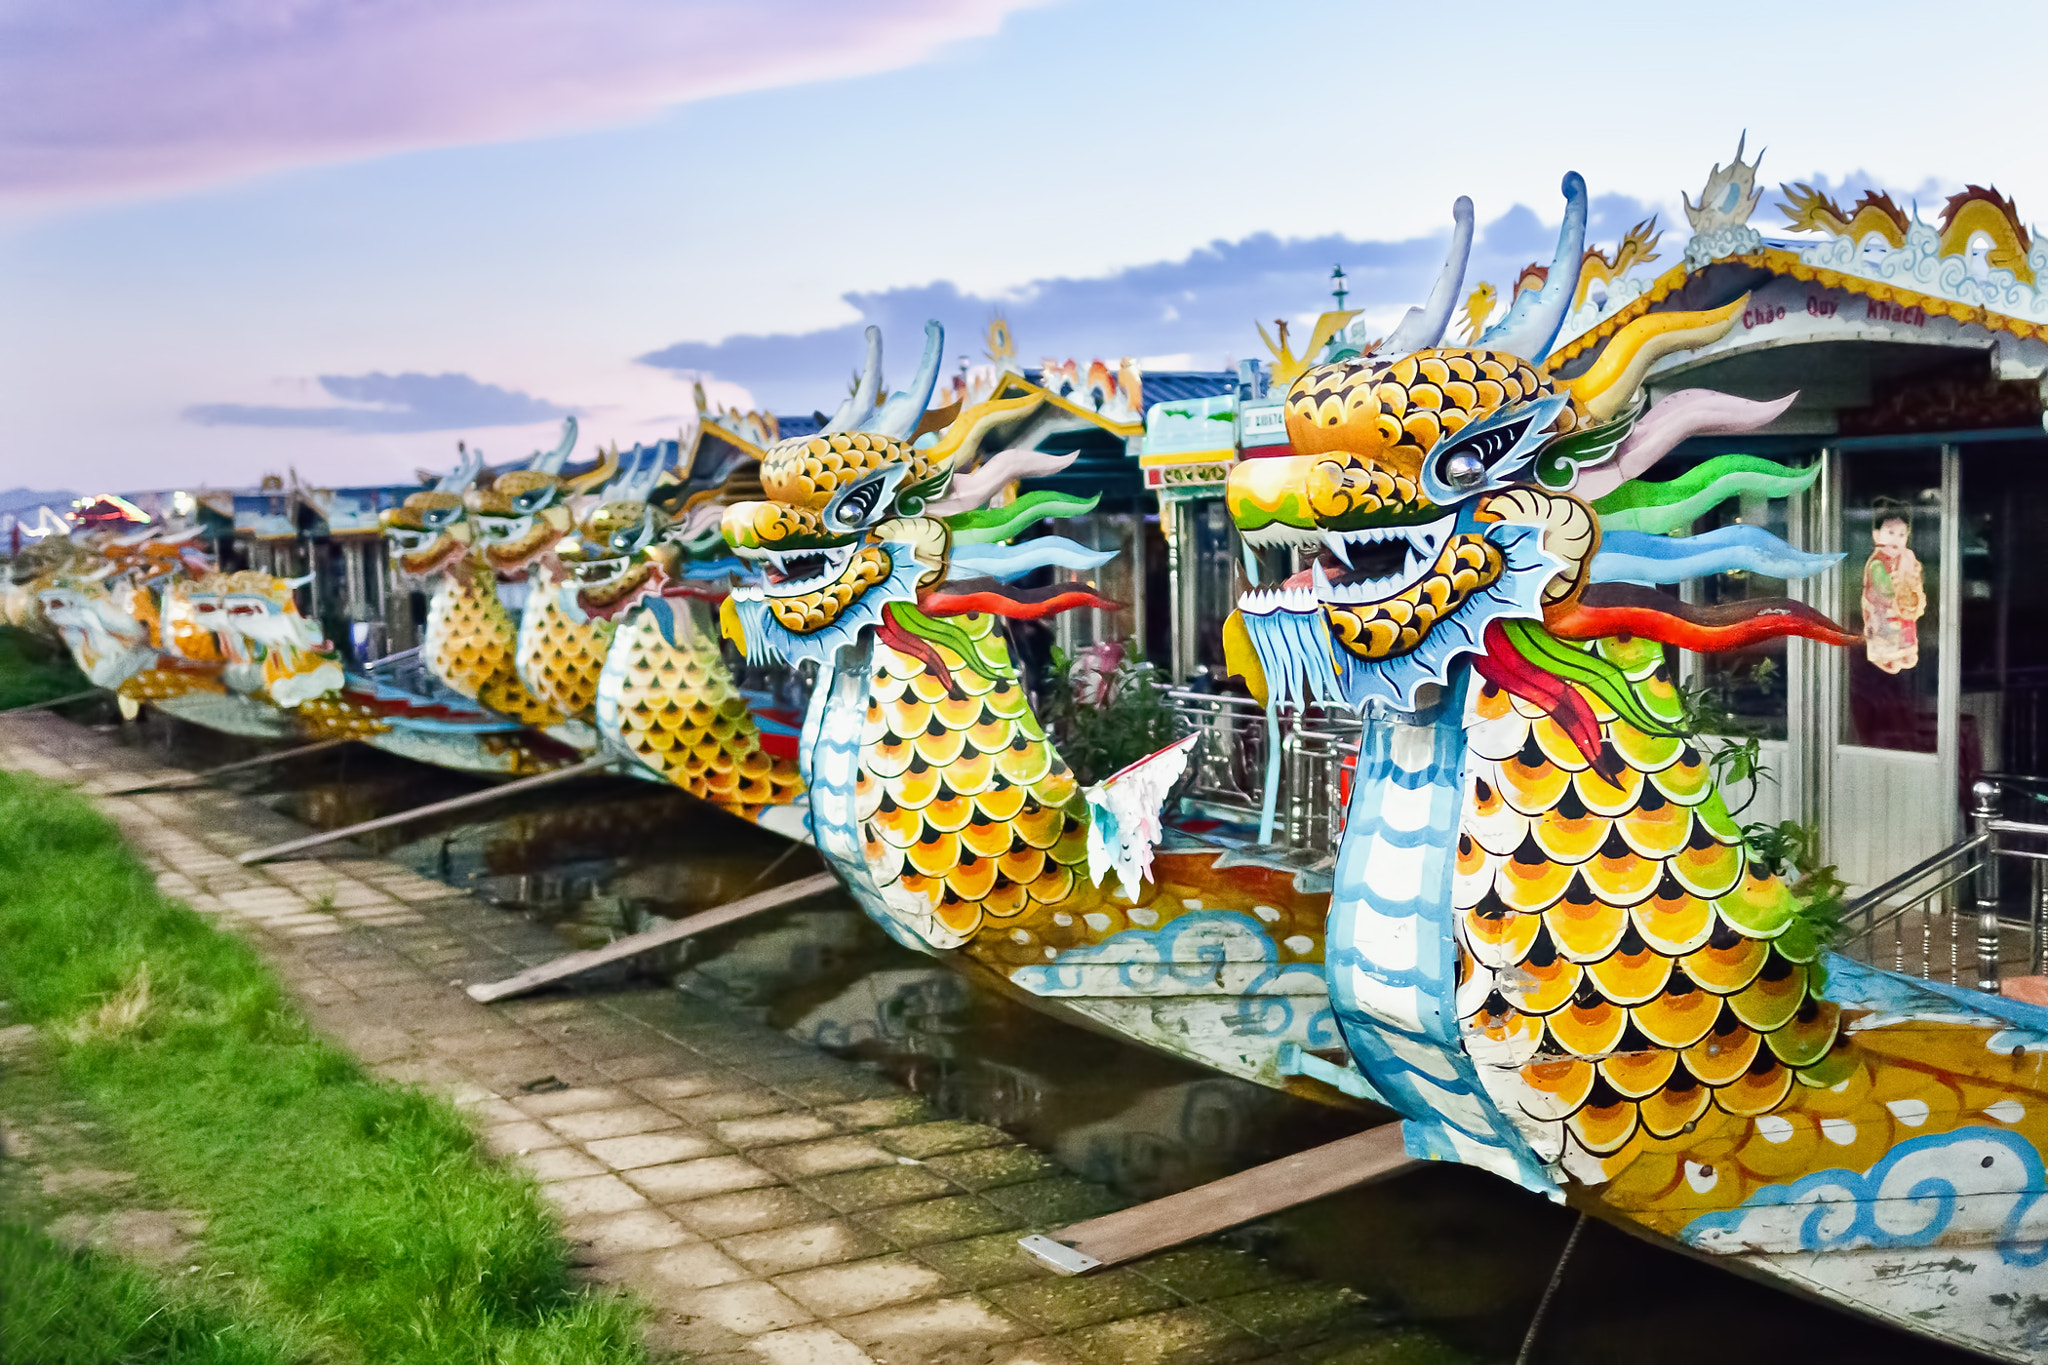 Photograph River Dragons by Phu Son Nguyen on 500px